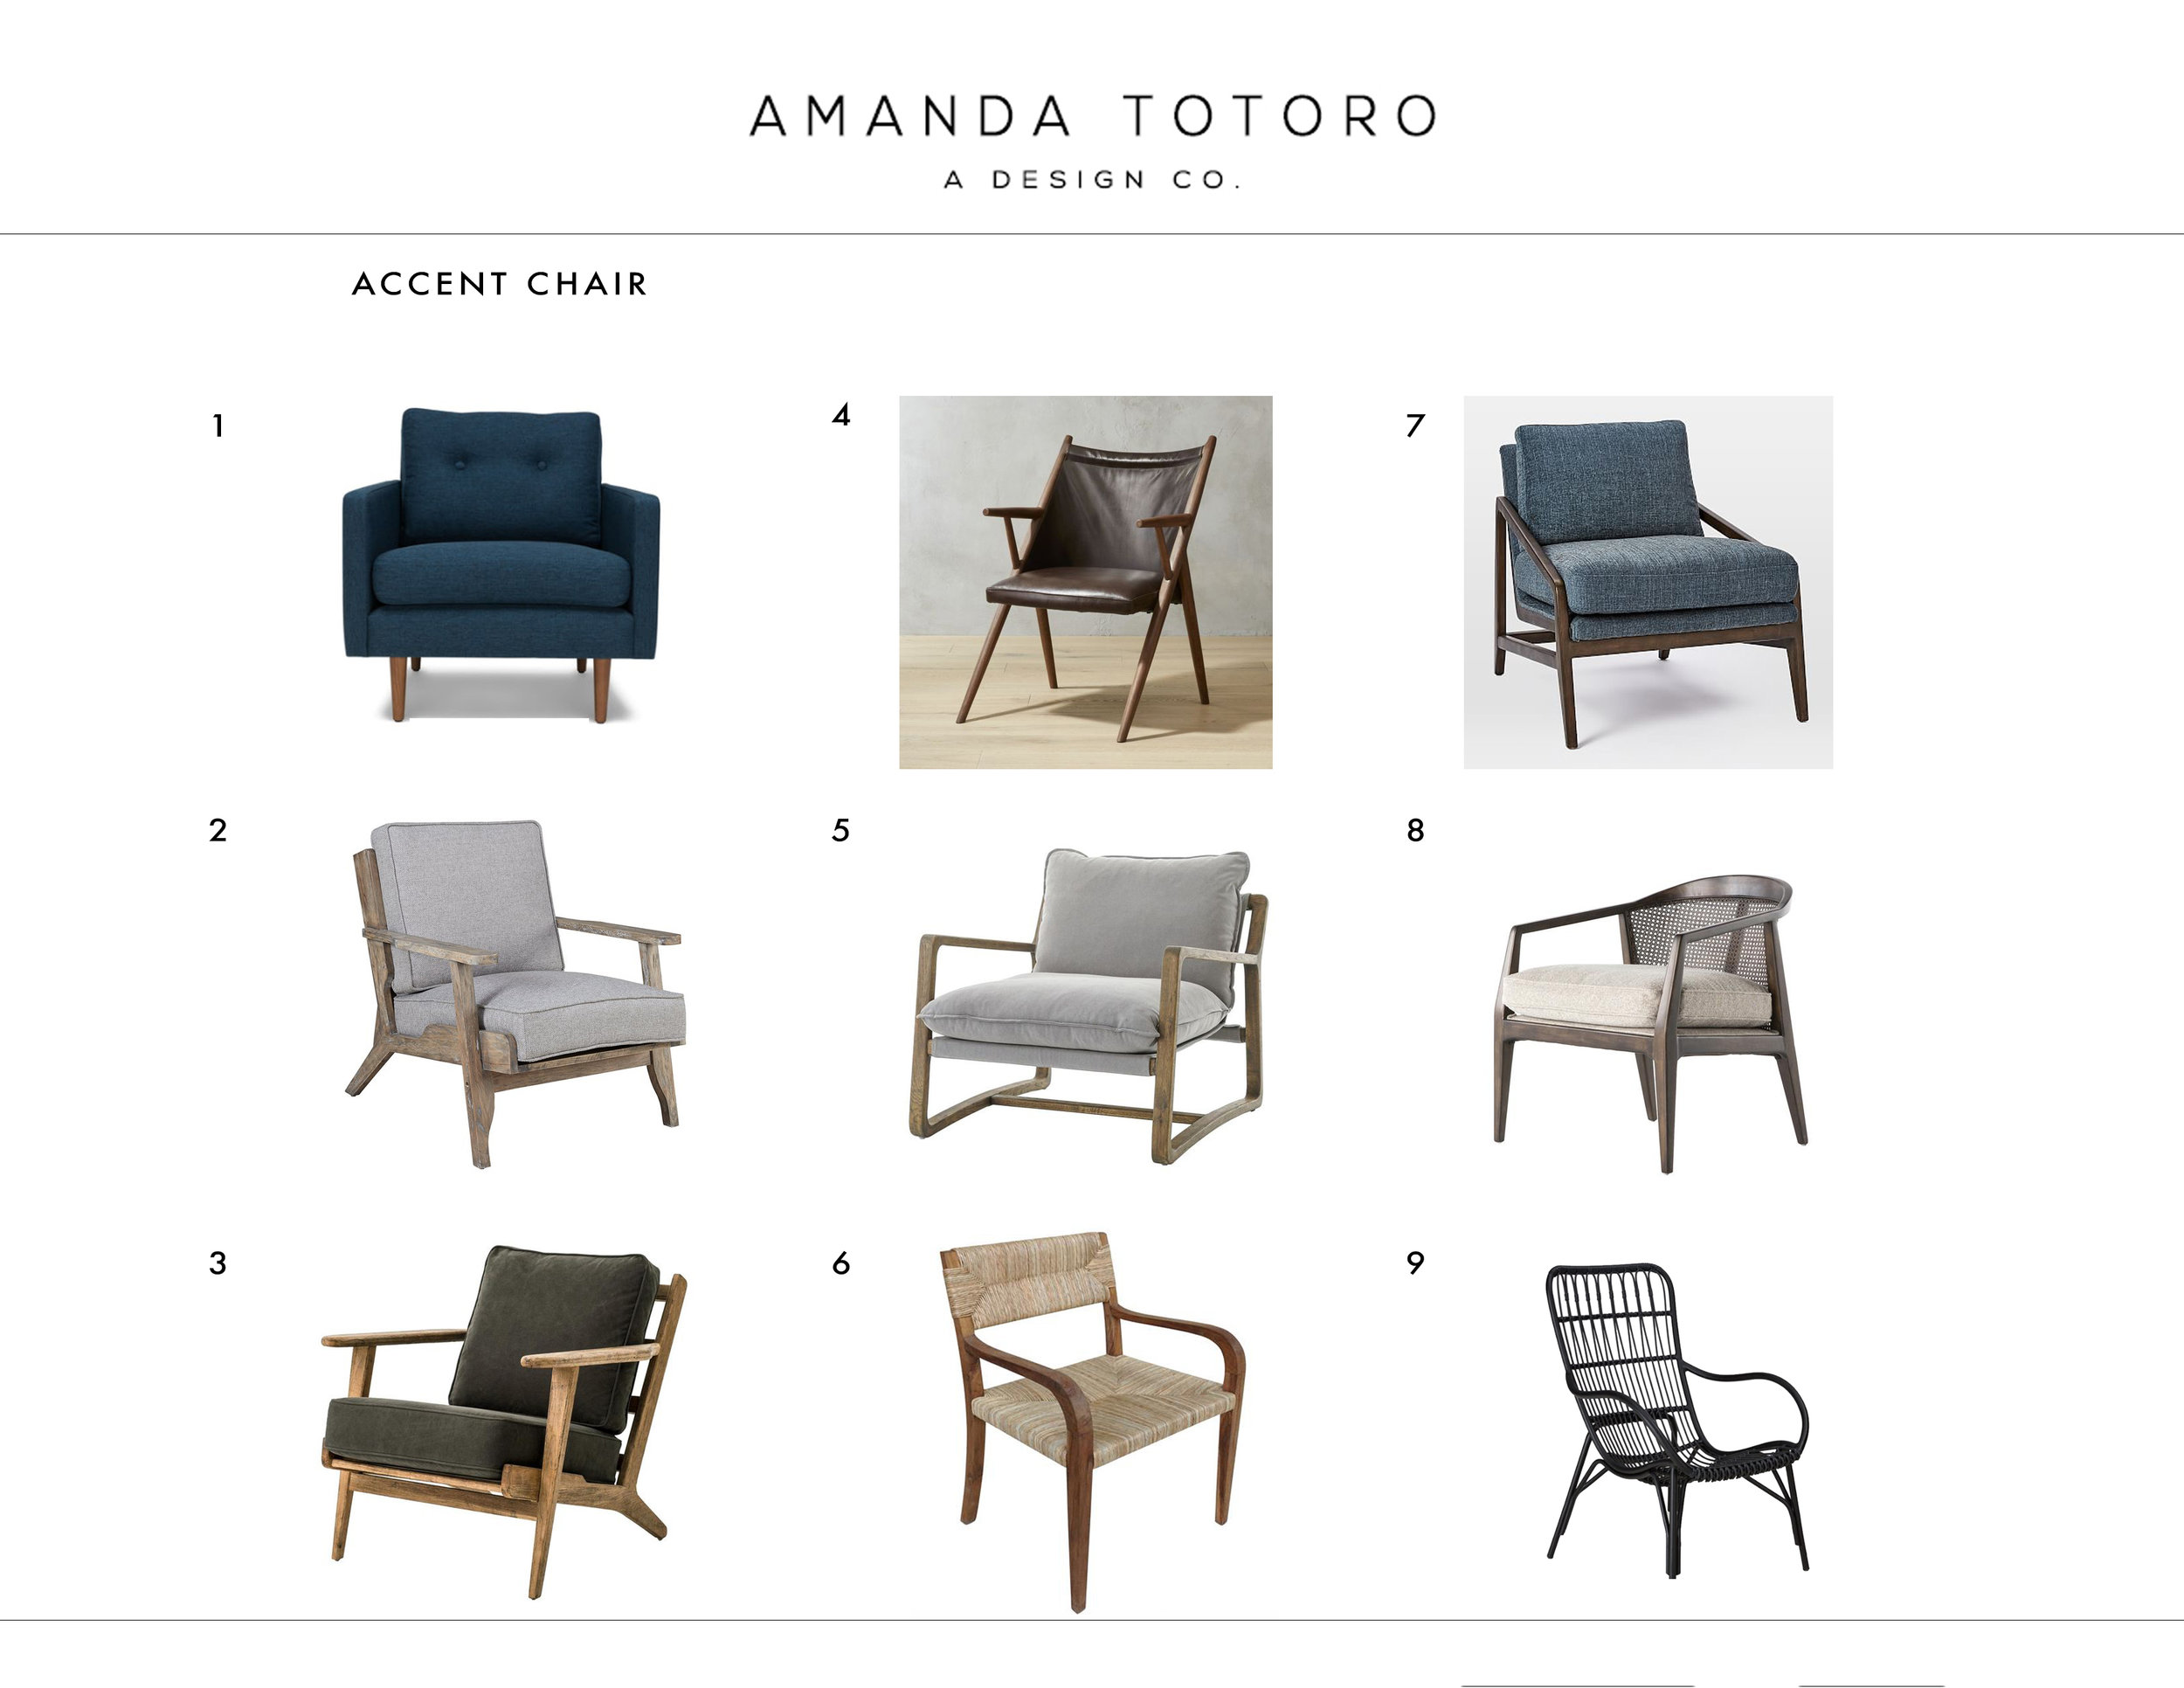 3. selections - I will start sourcing selections that fit our overall design vision. If clients are interested, I will send over multiple selections for them to choose their favorite.